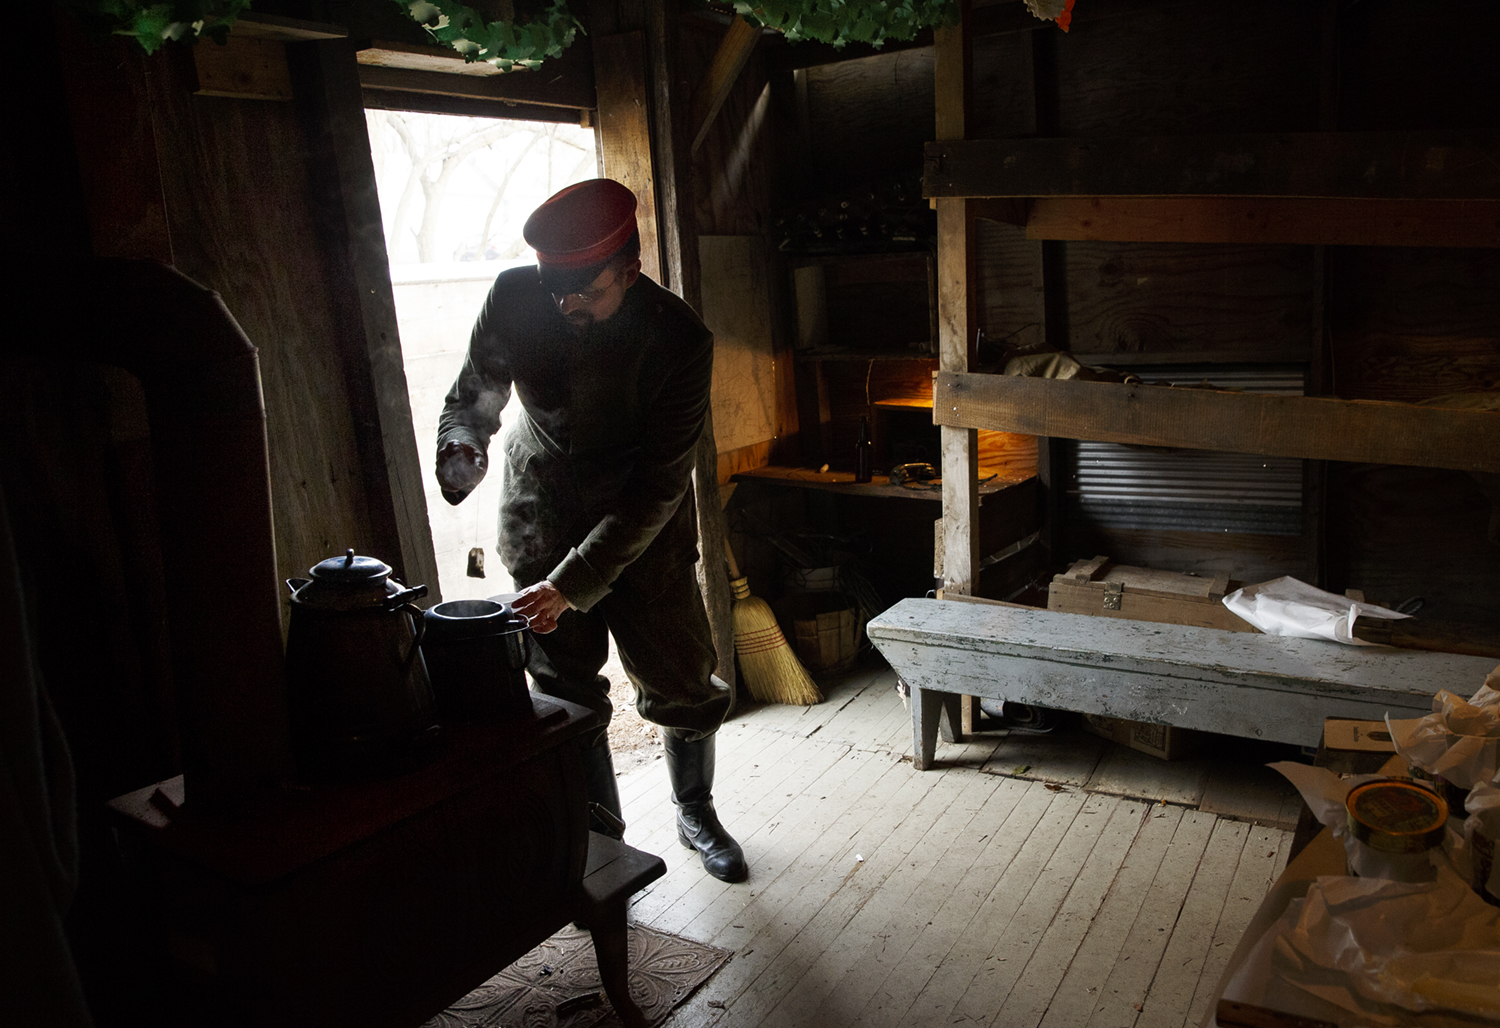 Erik Hack prepares a cup of tea near the entrance to a nine person bunker on the grounds of the Illinois State Military Museum during the Christmas on the Front program Saturday, Dec. 12, 2015. Hack was one of many historical re-enactors from the Revolutionary War, the Civil War, World War I and World War II. They talked to visitors about their equipment and how the soldiers handled being away from home during the holidays. Ted Schurter/The State Journal-Register